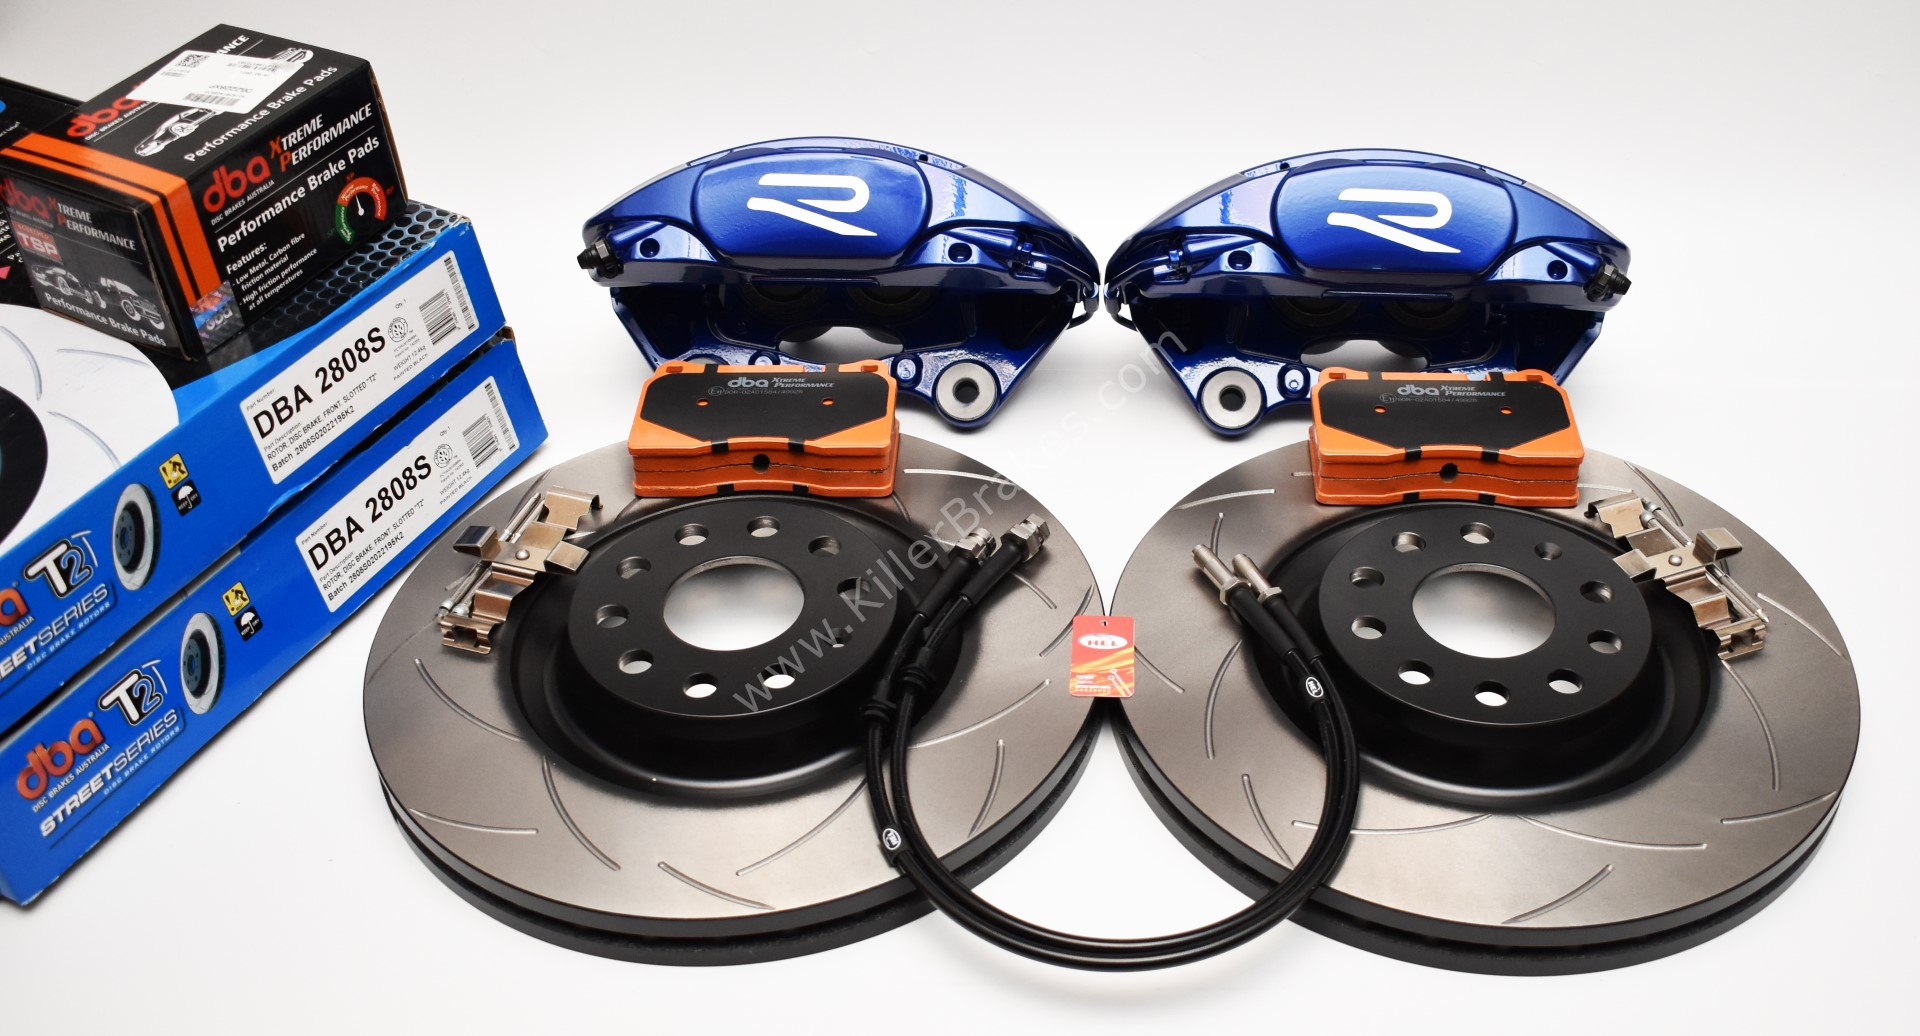 MQB Brake Kit Porsche Macan Brembo 4pot DBA 345x30mm Slotted discs NEW with color/logo options